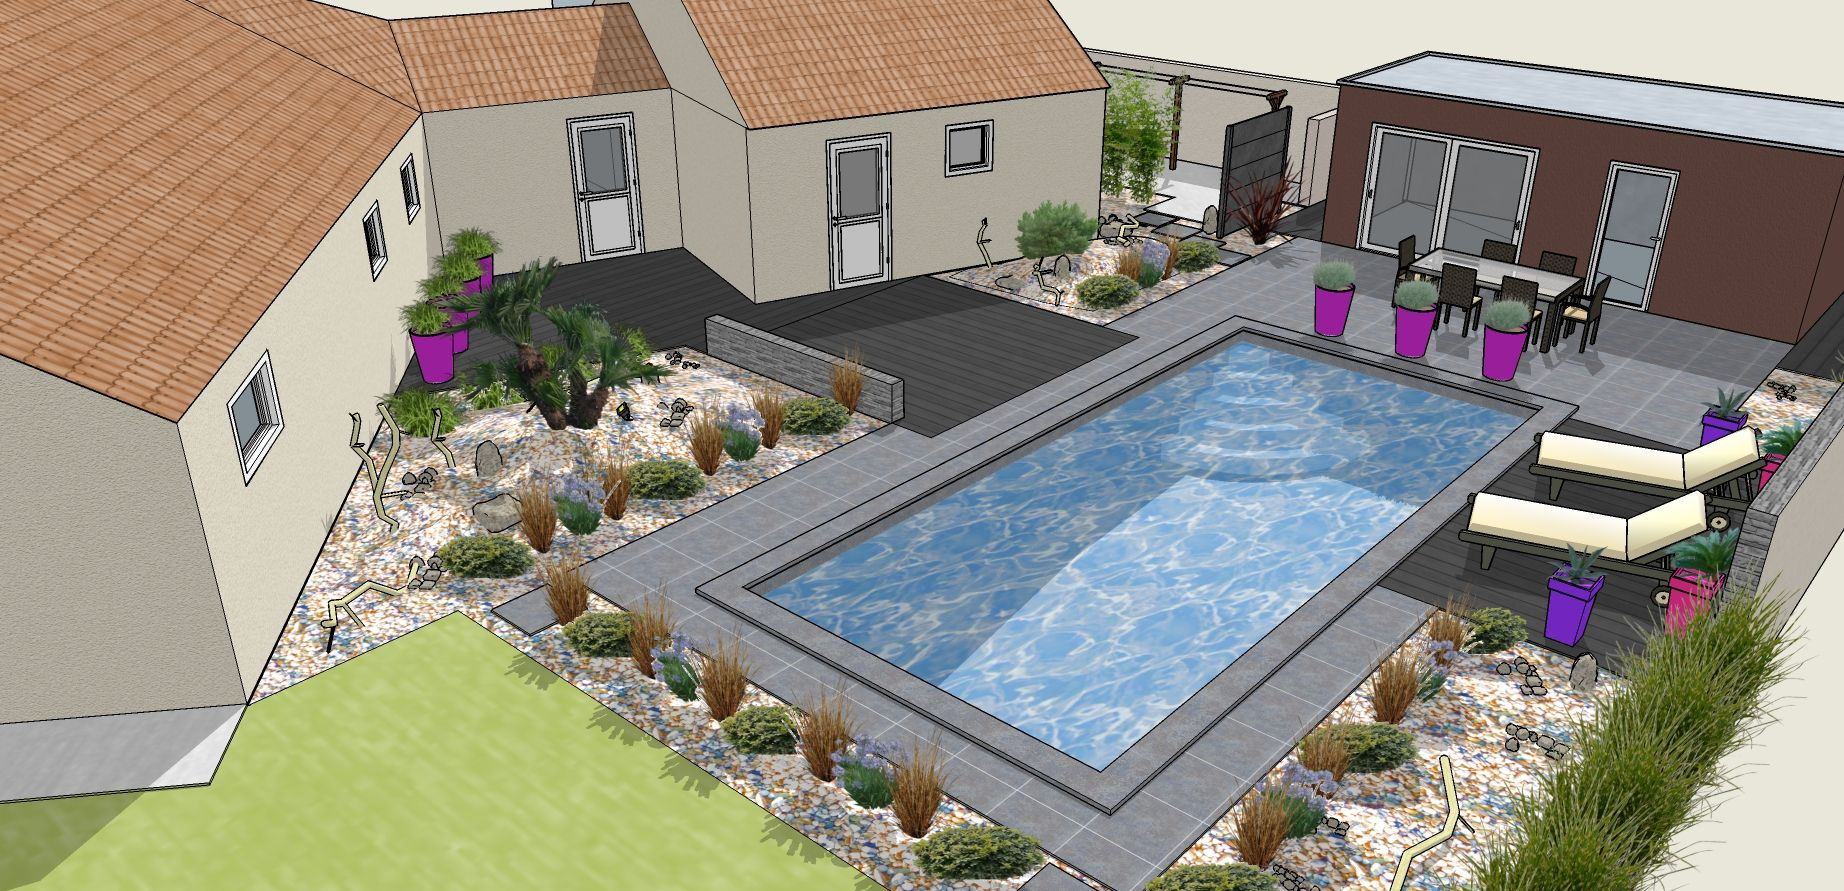 Am nagement paysager piscine creus e contemporain for Amenagement piscine terrasse